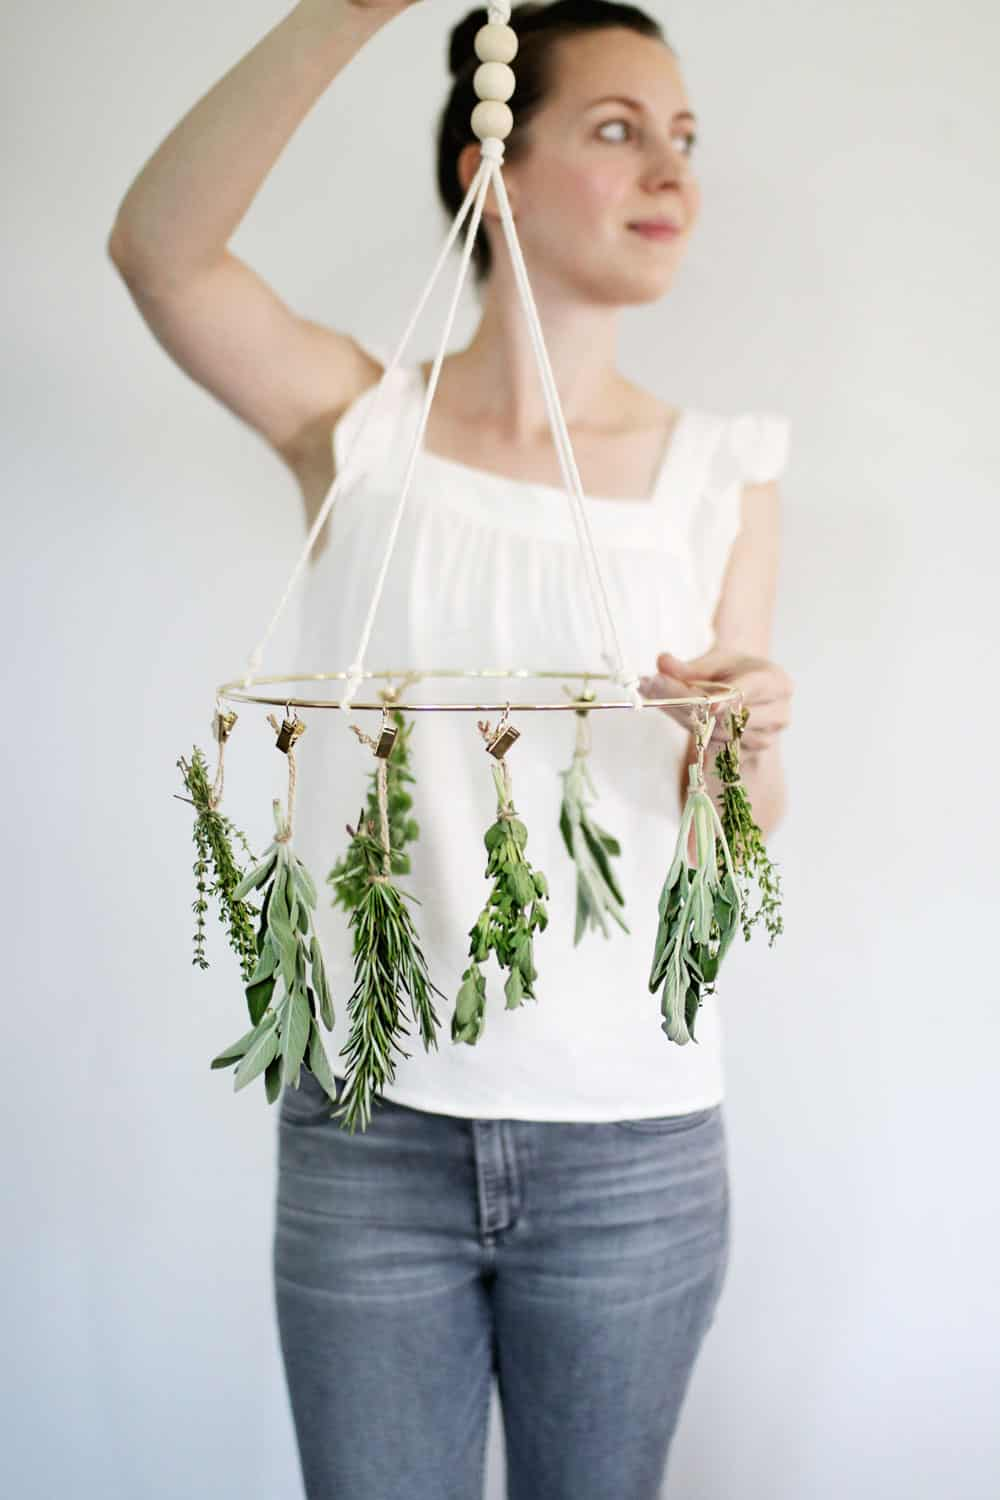 This simple DIY herb drying rack is fun and creative